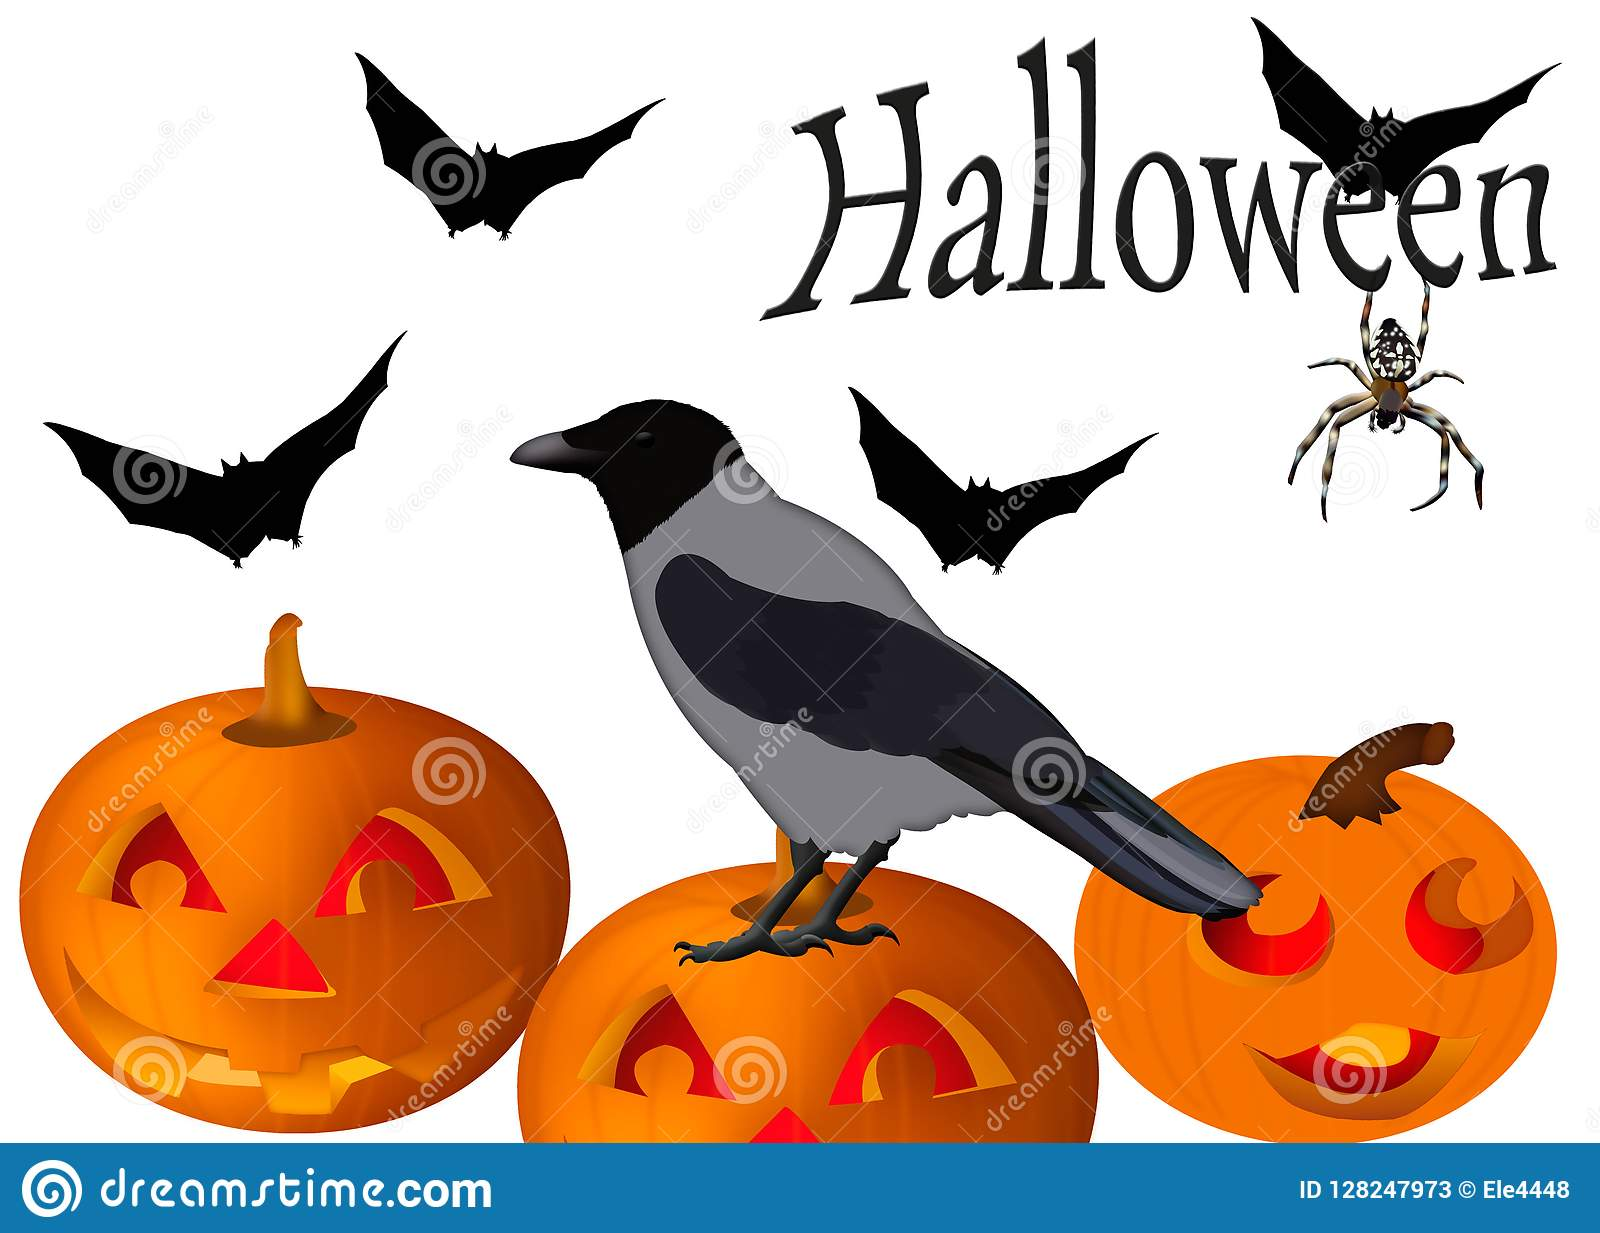 halloween card illustration with crow pumpkins bats and spide